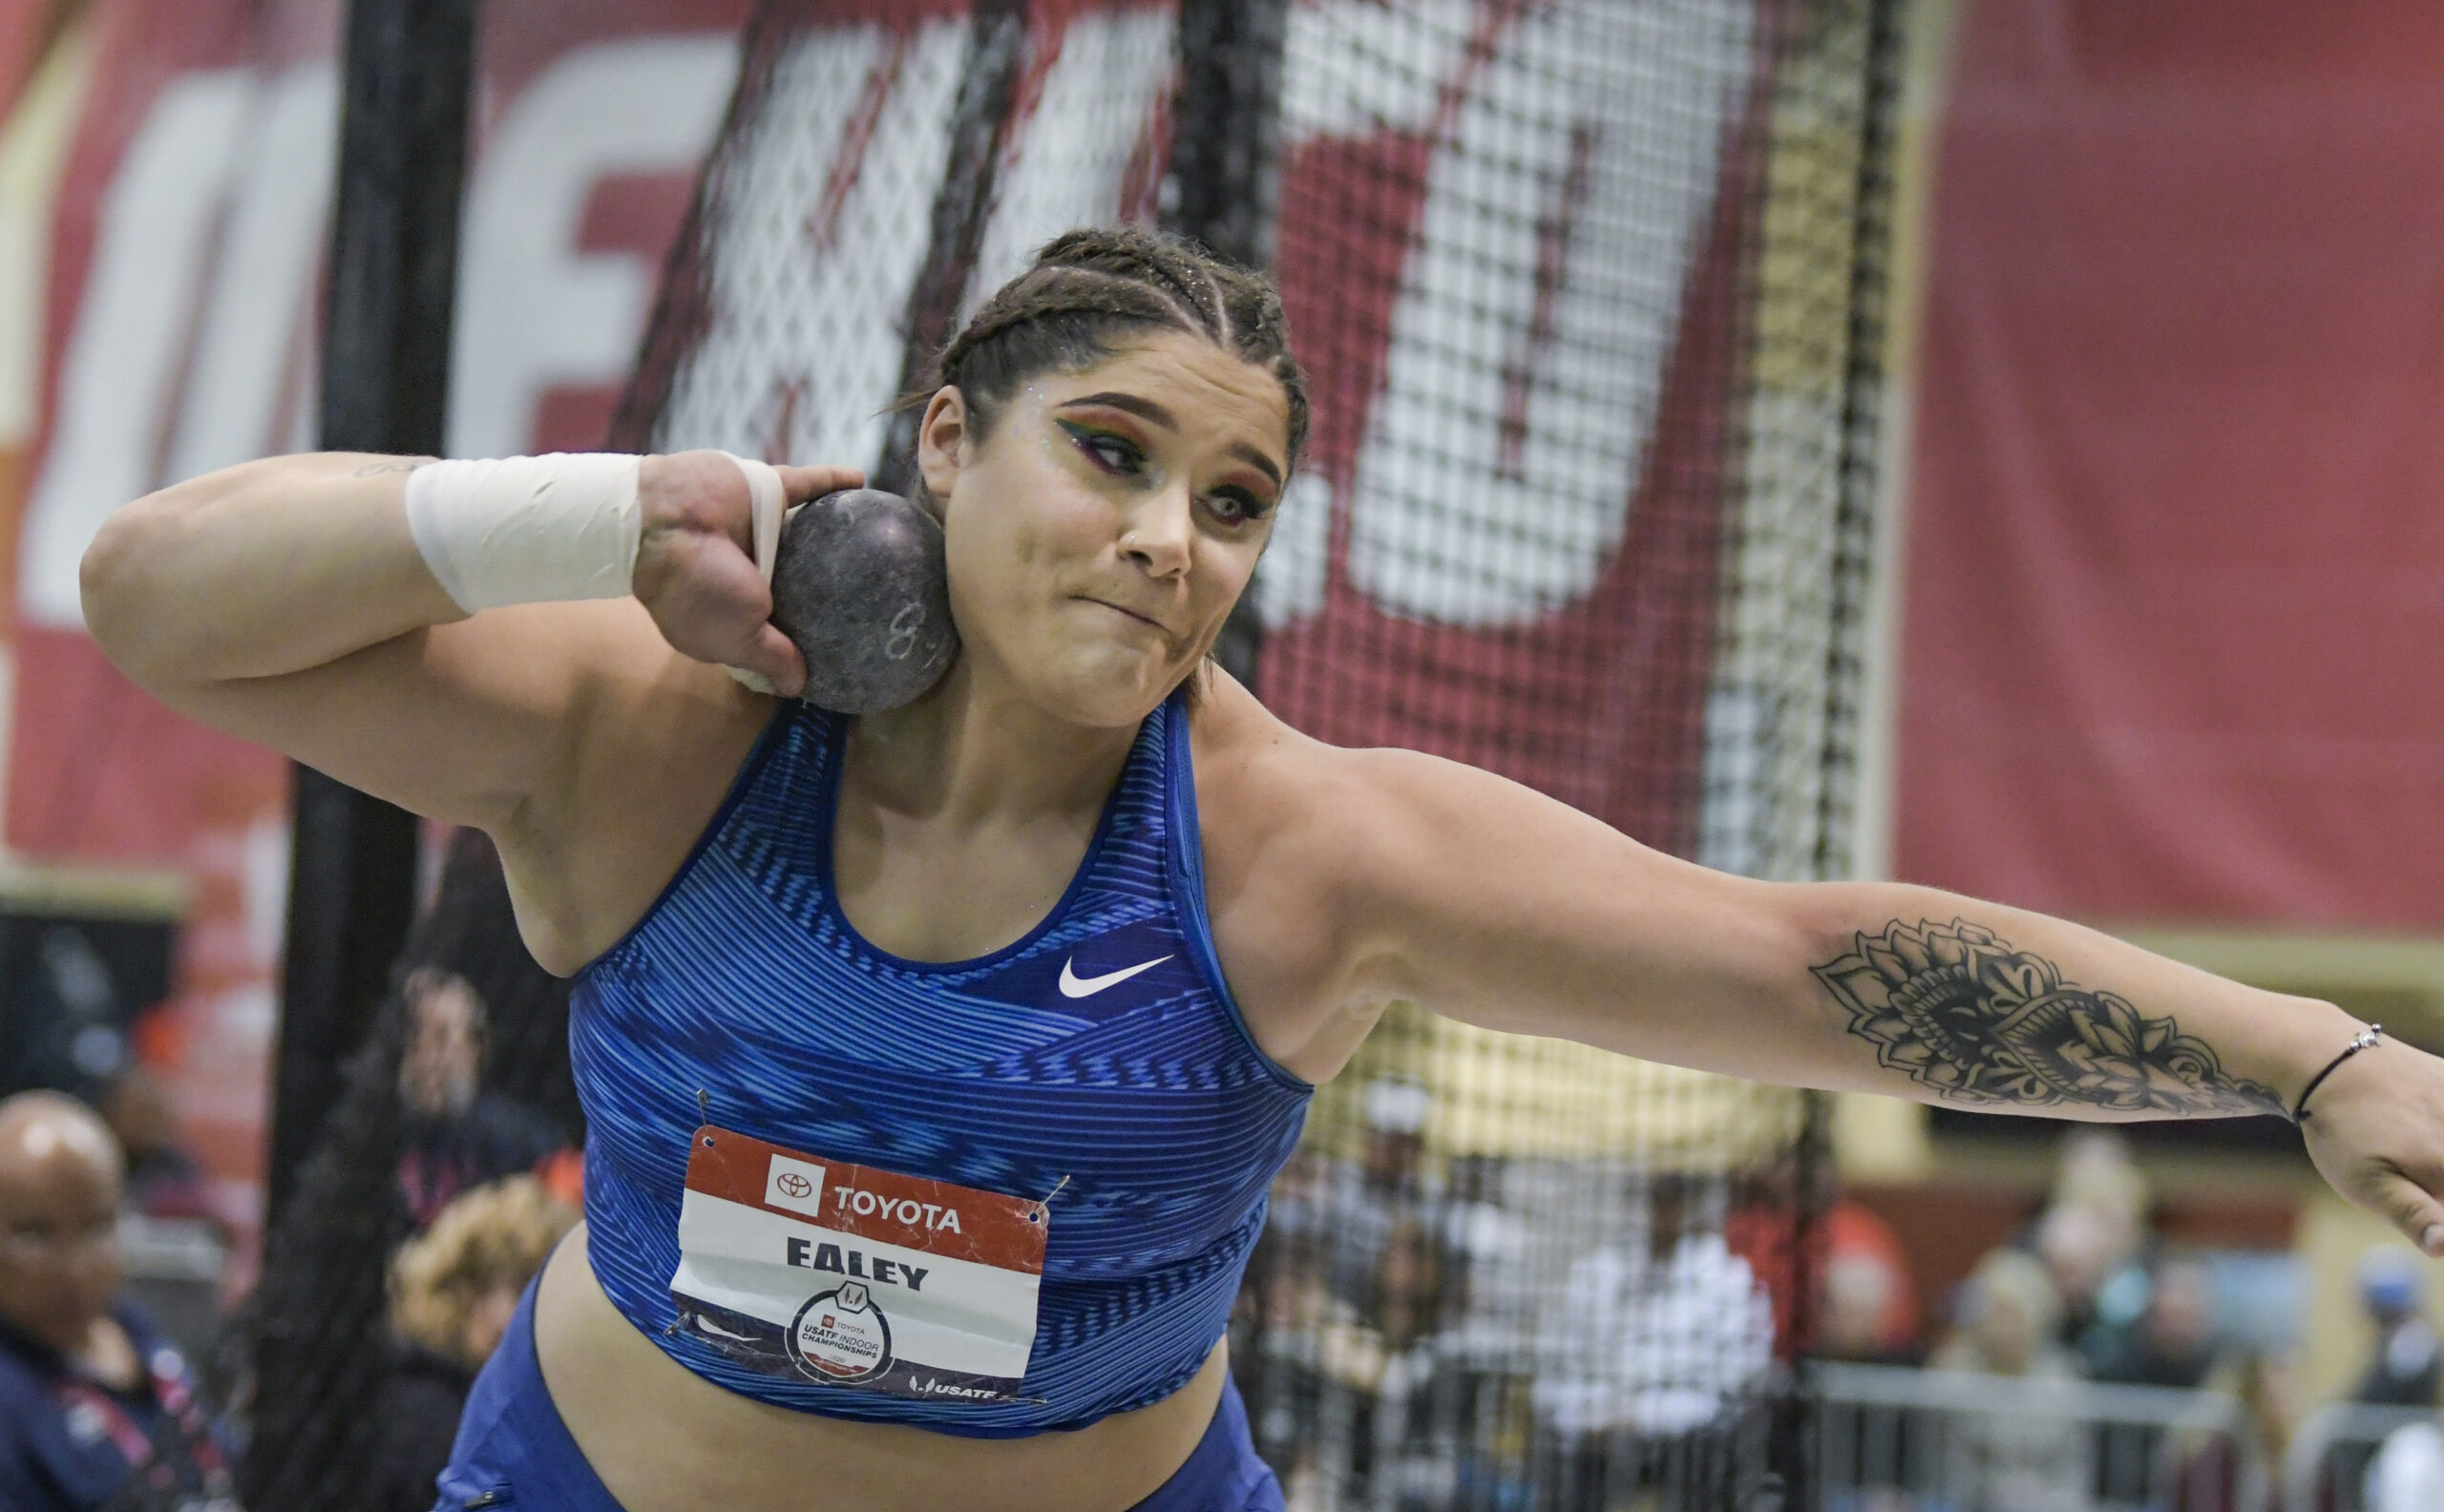 Los Alamos' Ealey wins in USATF shot put » Albuquerque Journal